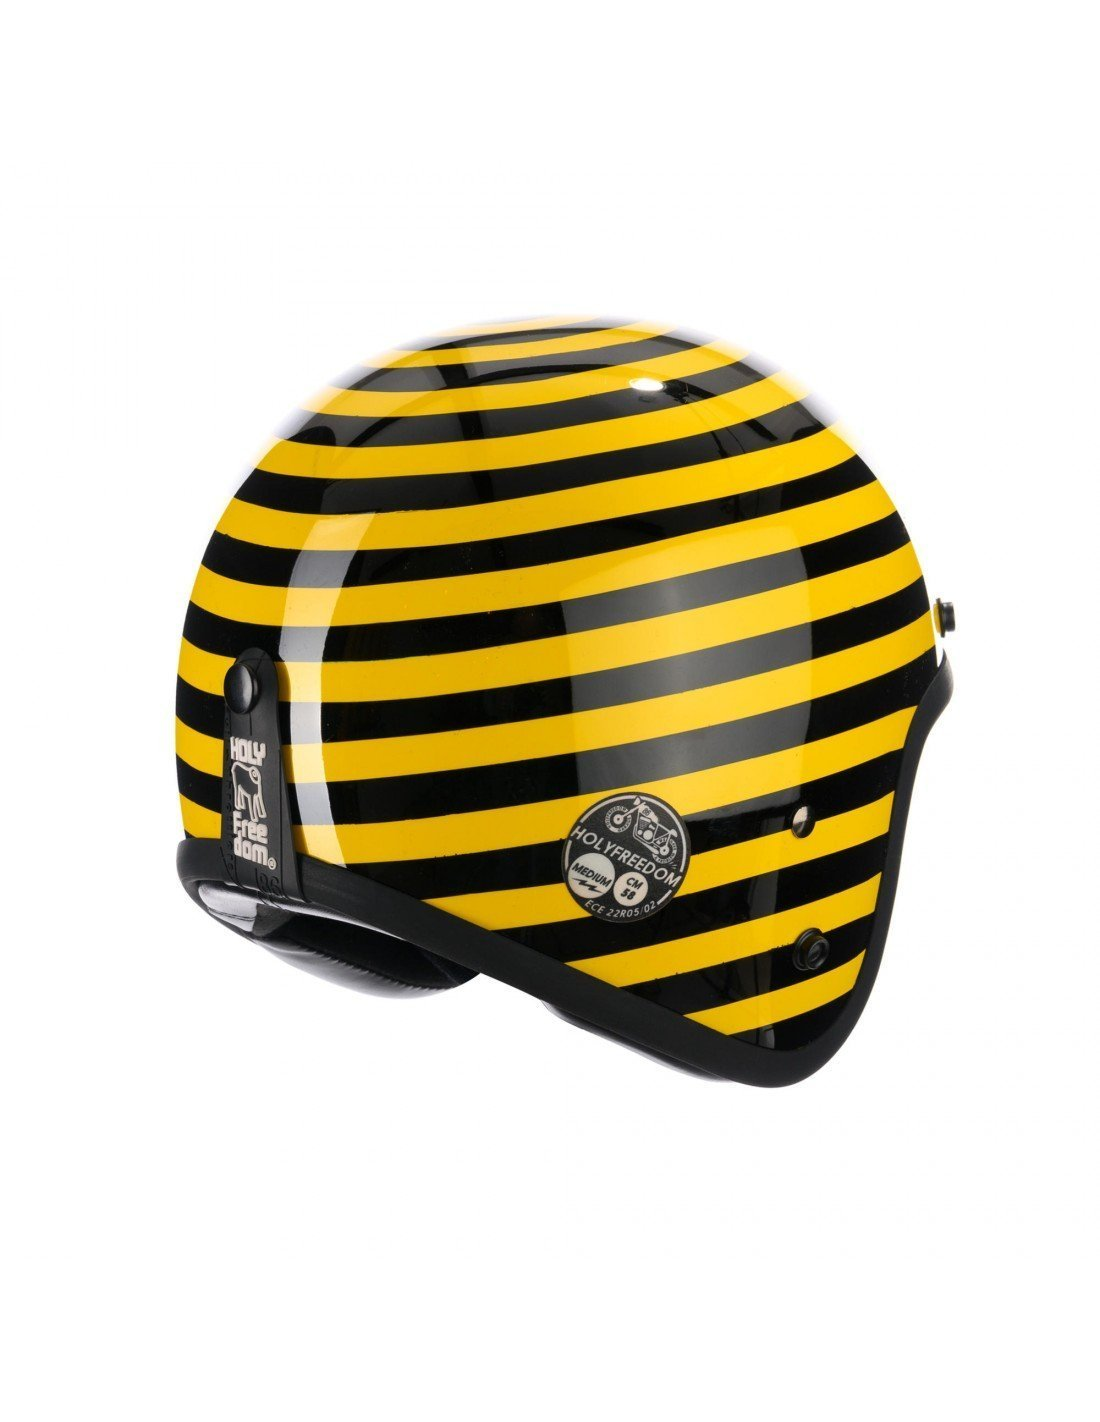 Holy Freedom - Holy Freedom Yellow Stripe Striscia Open Face Jet Helmet ECE Certified - Helmets - Salt Flats Clothing